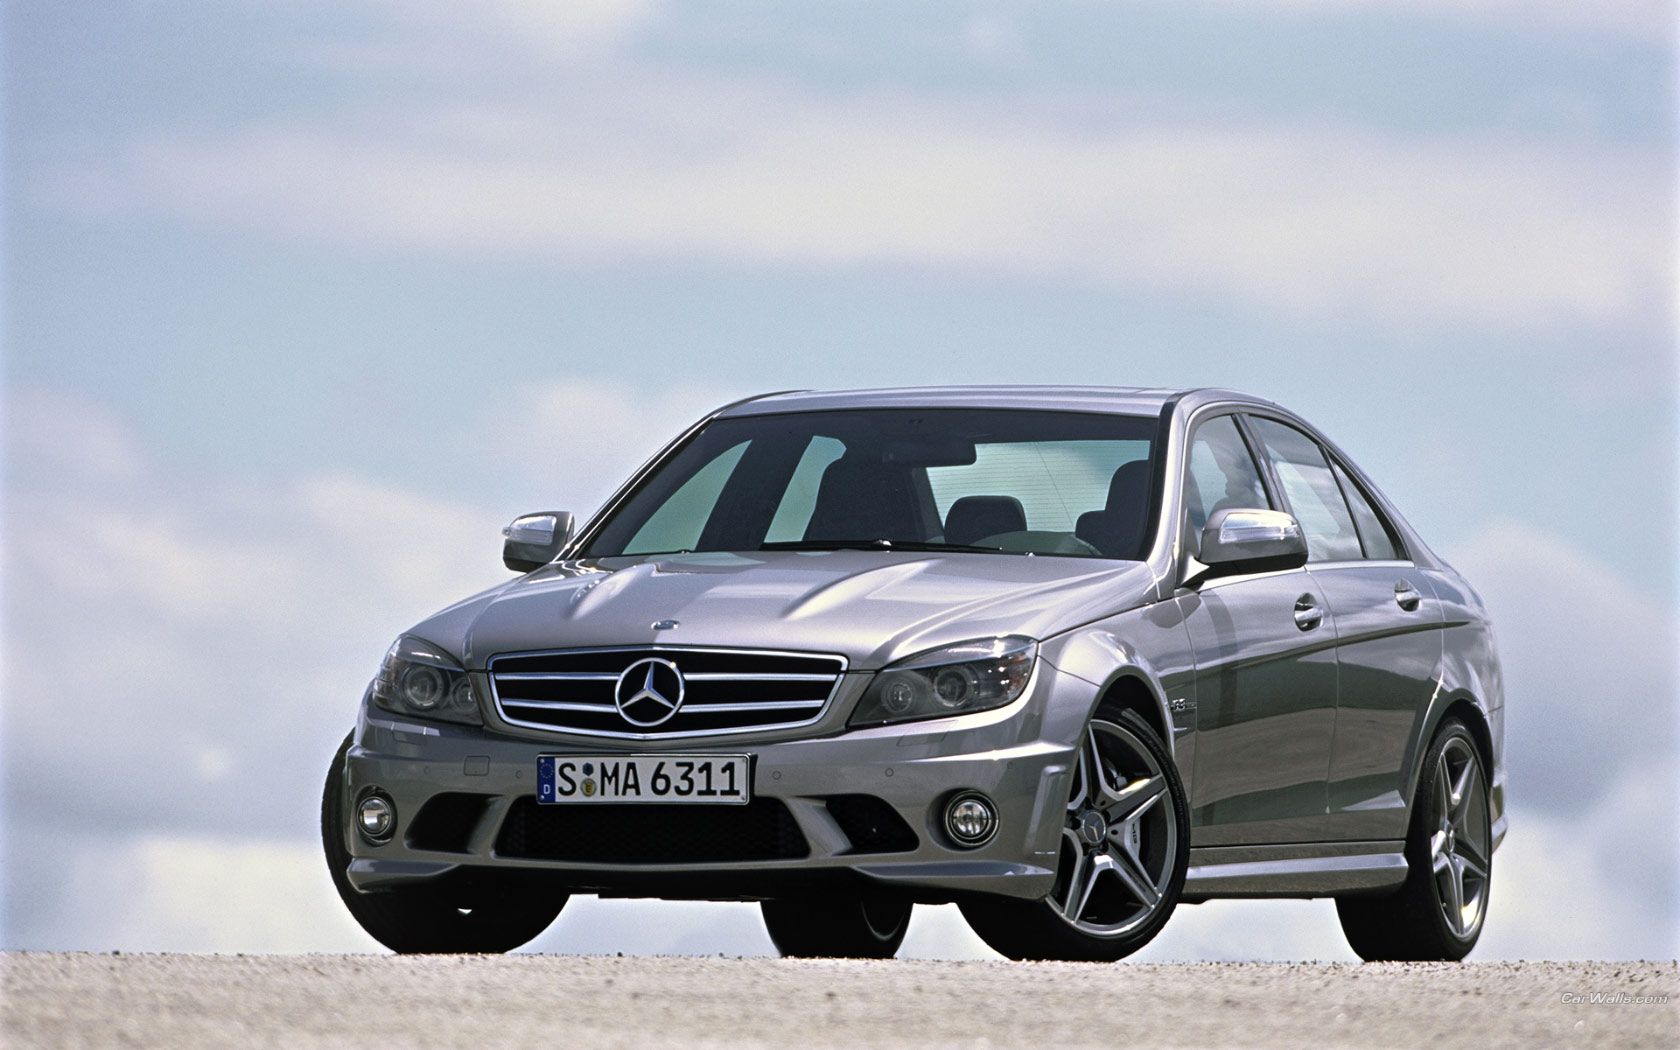 2016 Mercedes Benz Gl Class Overview as well 1949 1951 Mercedes Benz 170da Pickup W136 Road Test in addition alibaba   12vairconditionerforcarportablepromotion as well Corbillards Limousines Vehicules Funeraires Mercedes Classe E as well Volvo C70 Black 2009 Car. on mercedes benz font